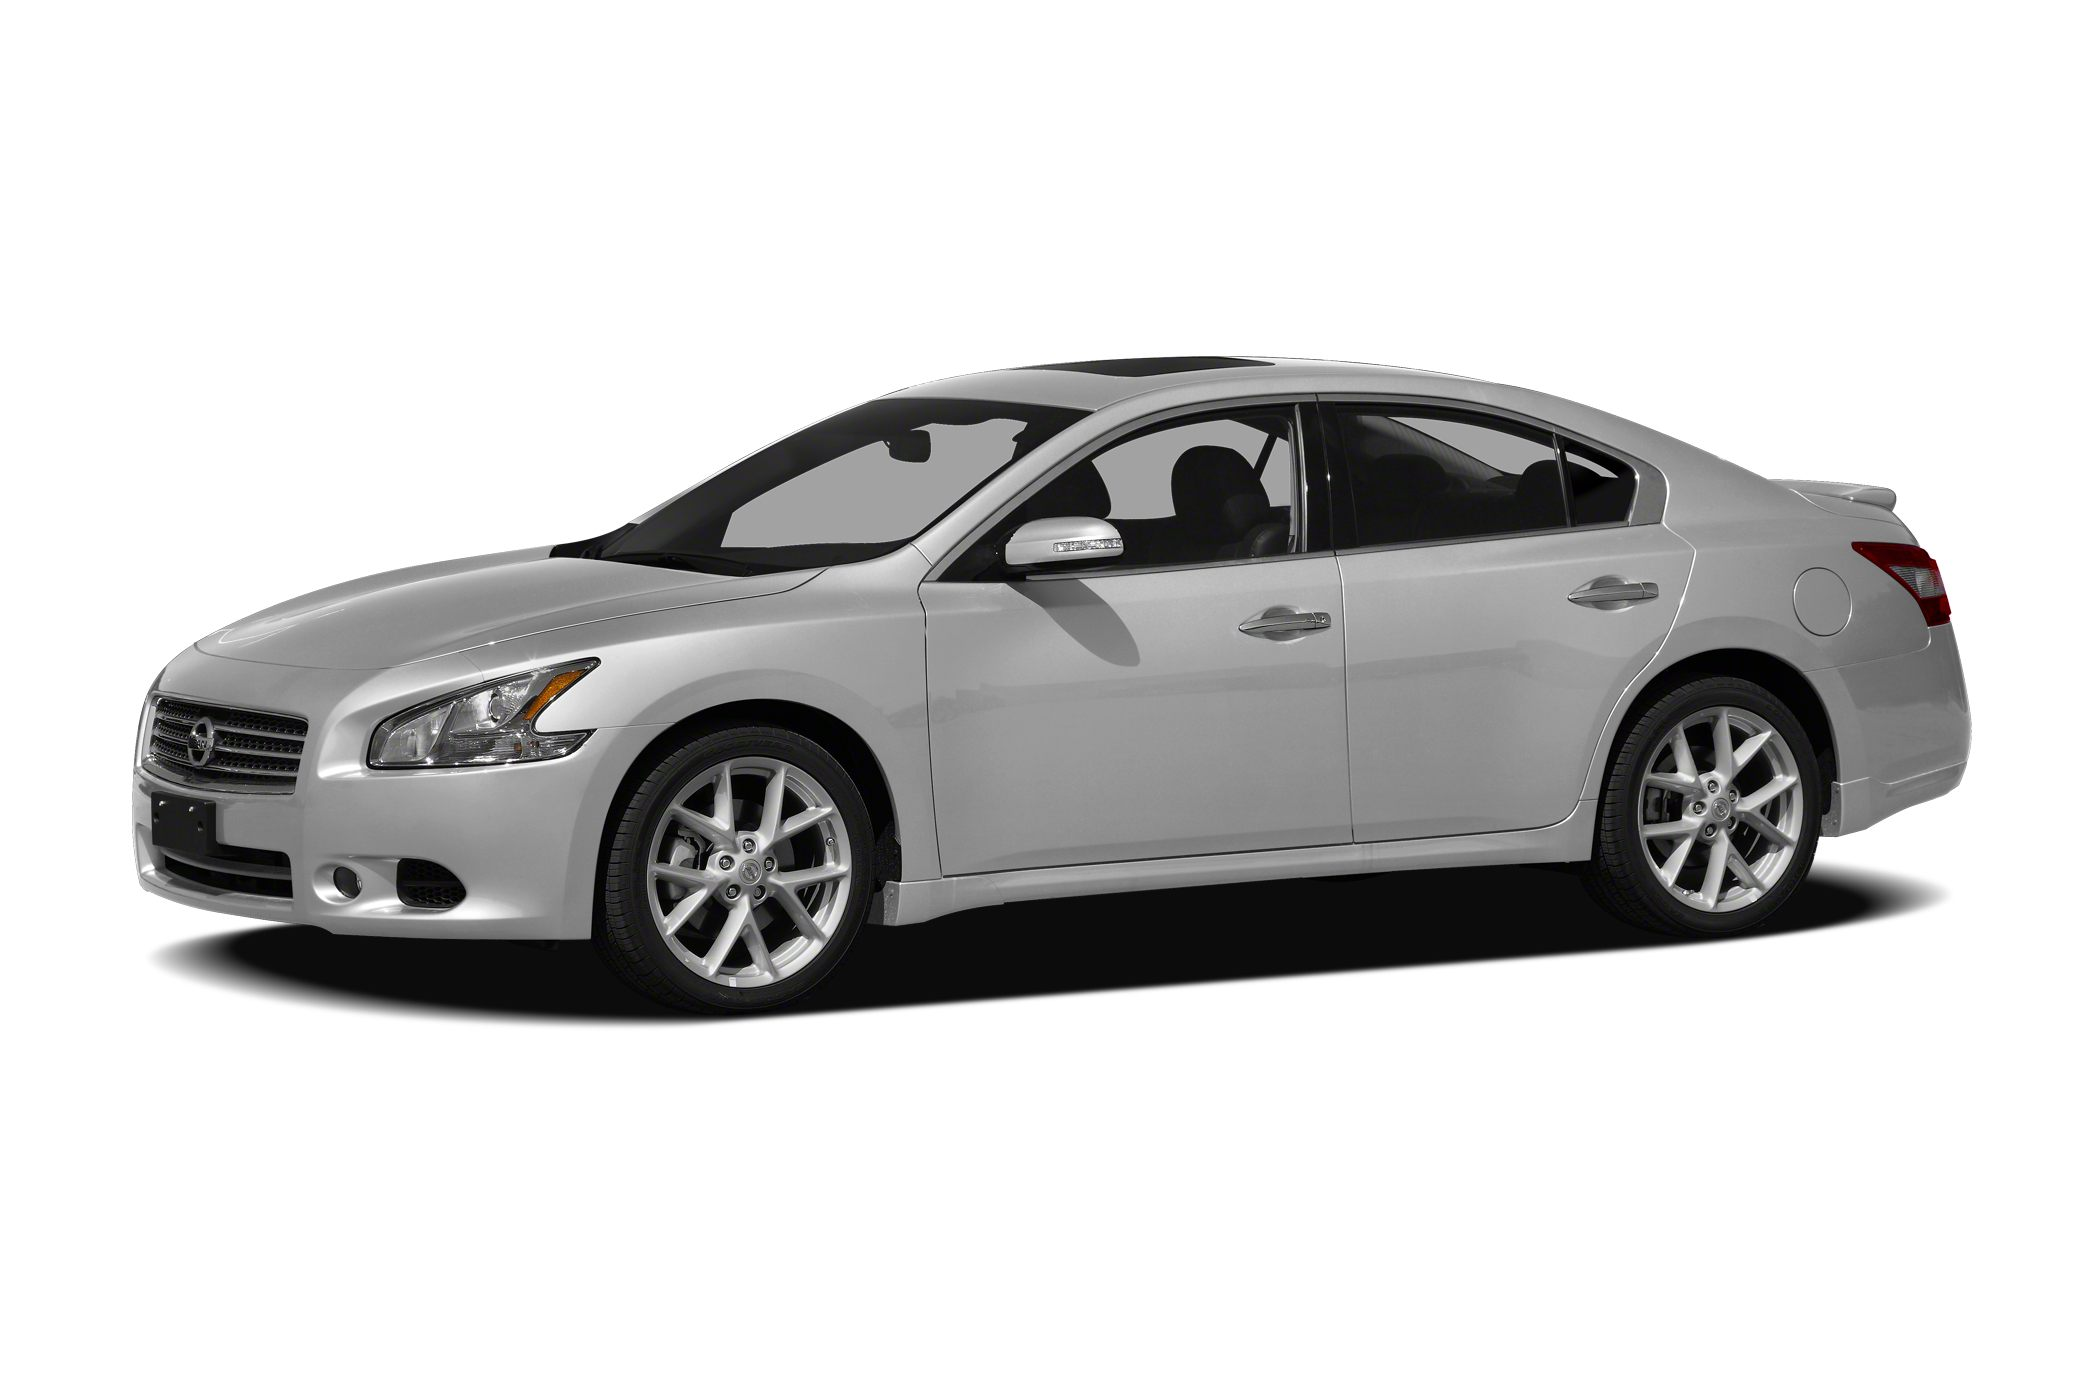 2011 Nissan Maxima SV Sedan for sale in Logan for $19,384 with 60,125 miles